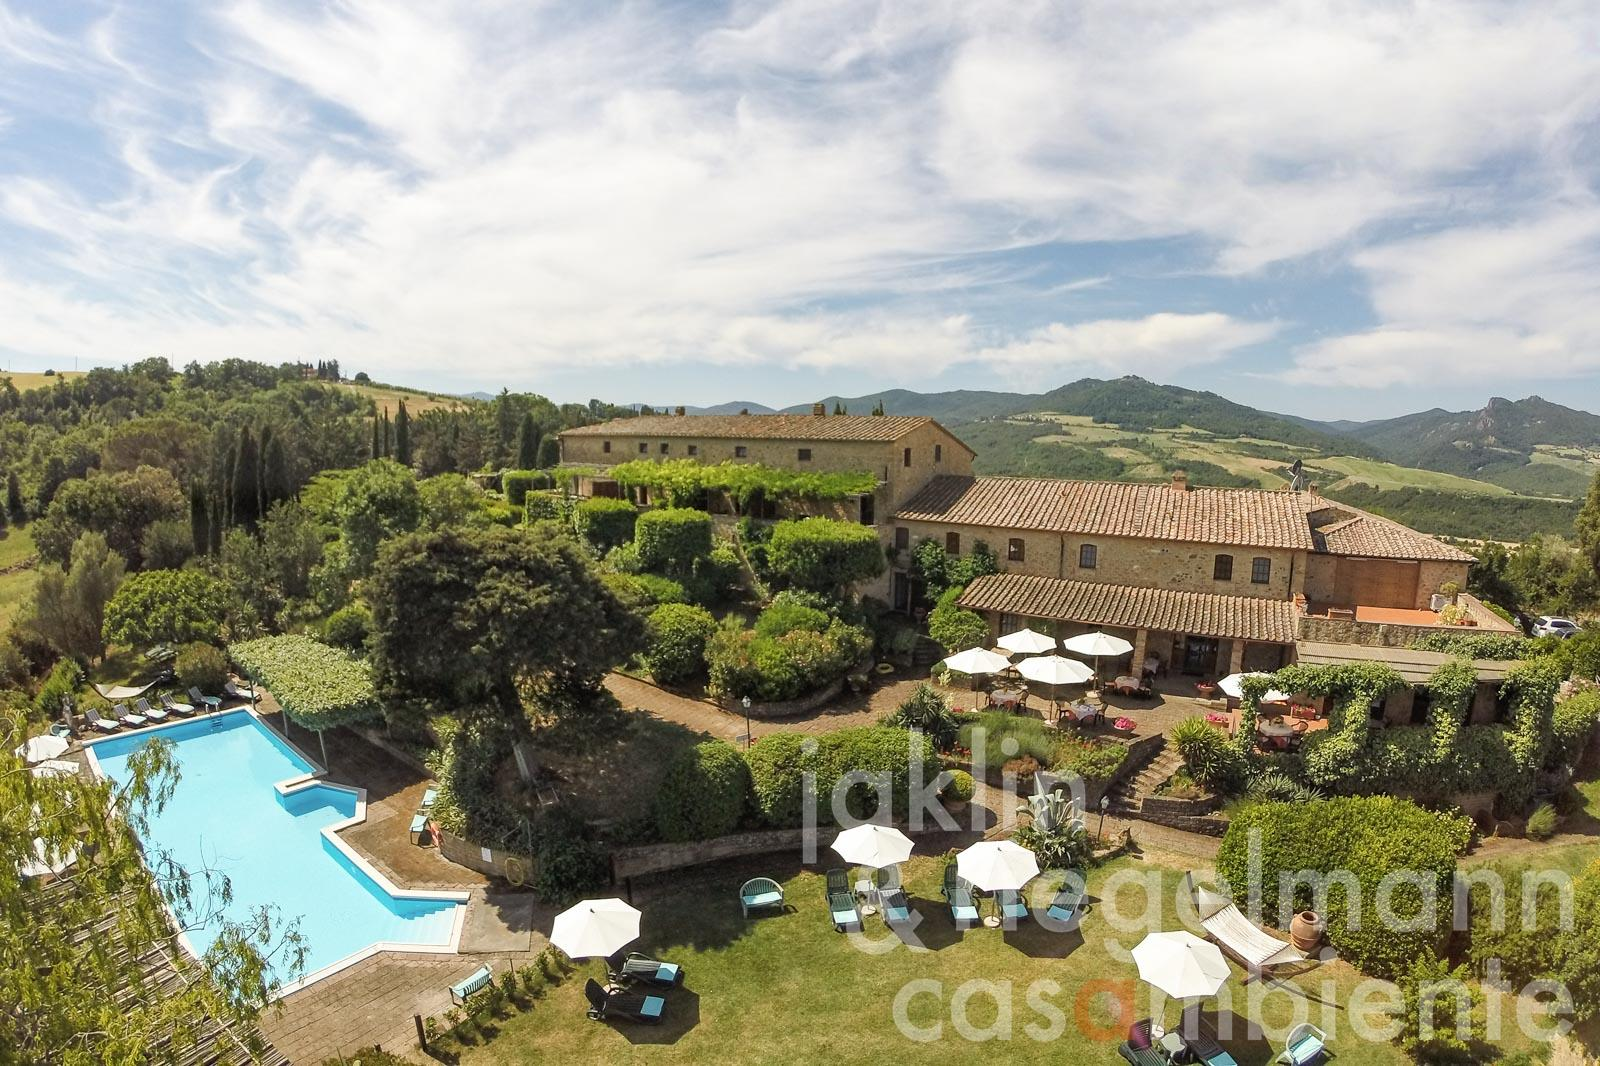 The manor for sale with holiday apartments, pool and garden close to Volterra in Tuscany